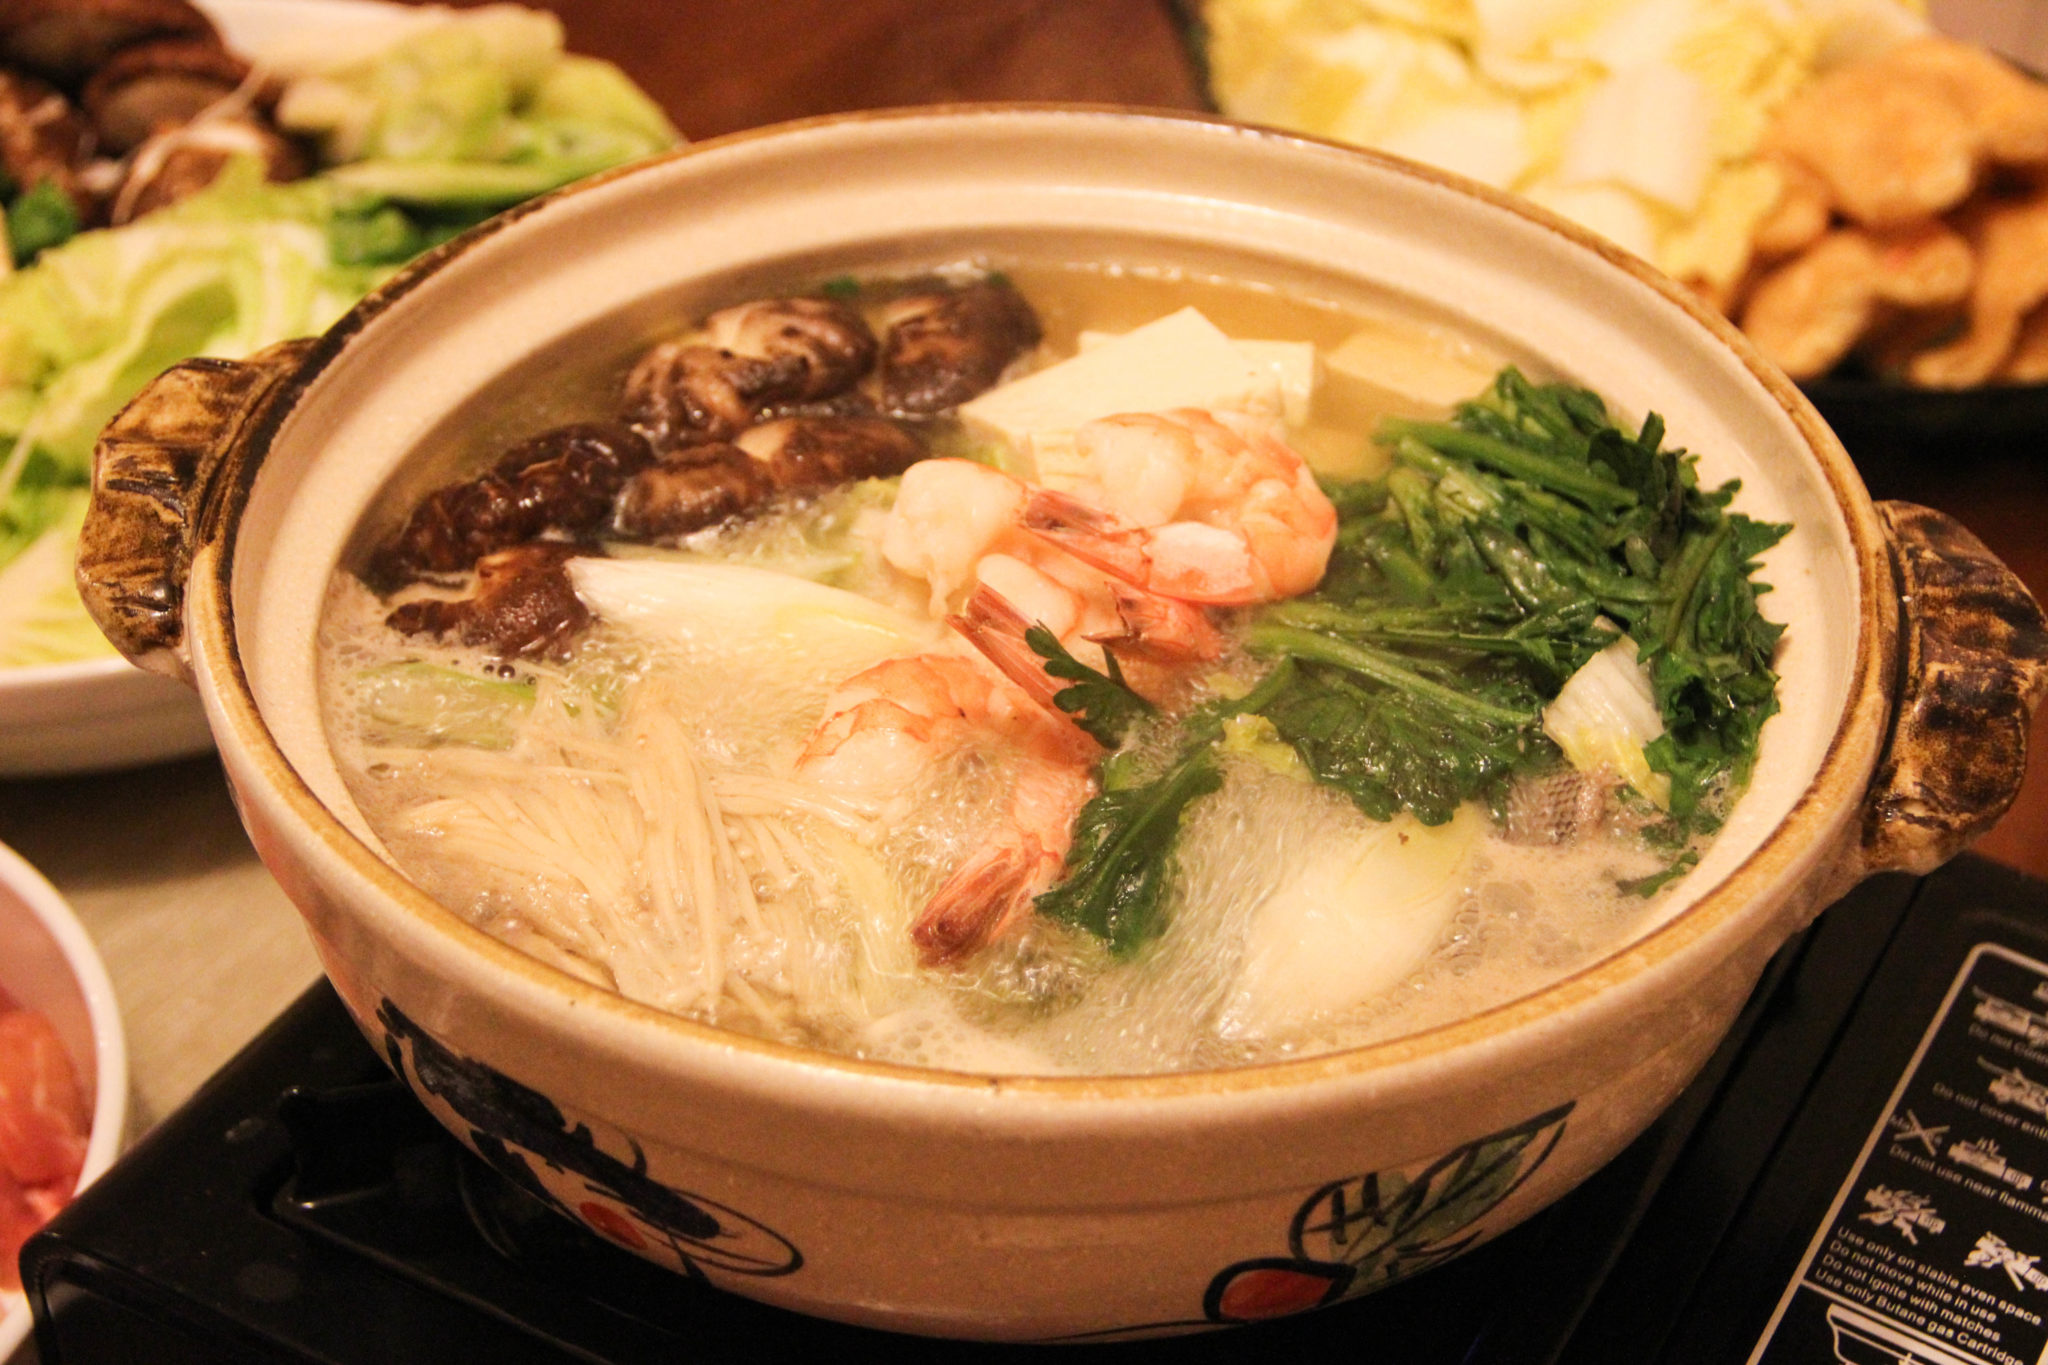 Mizutaki (Japanese hot pot)